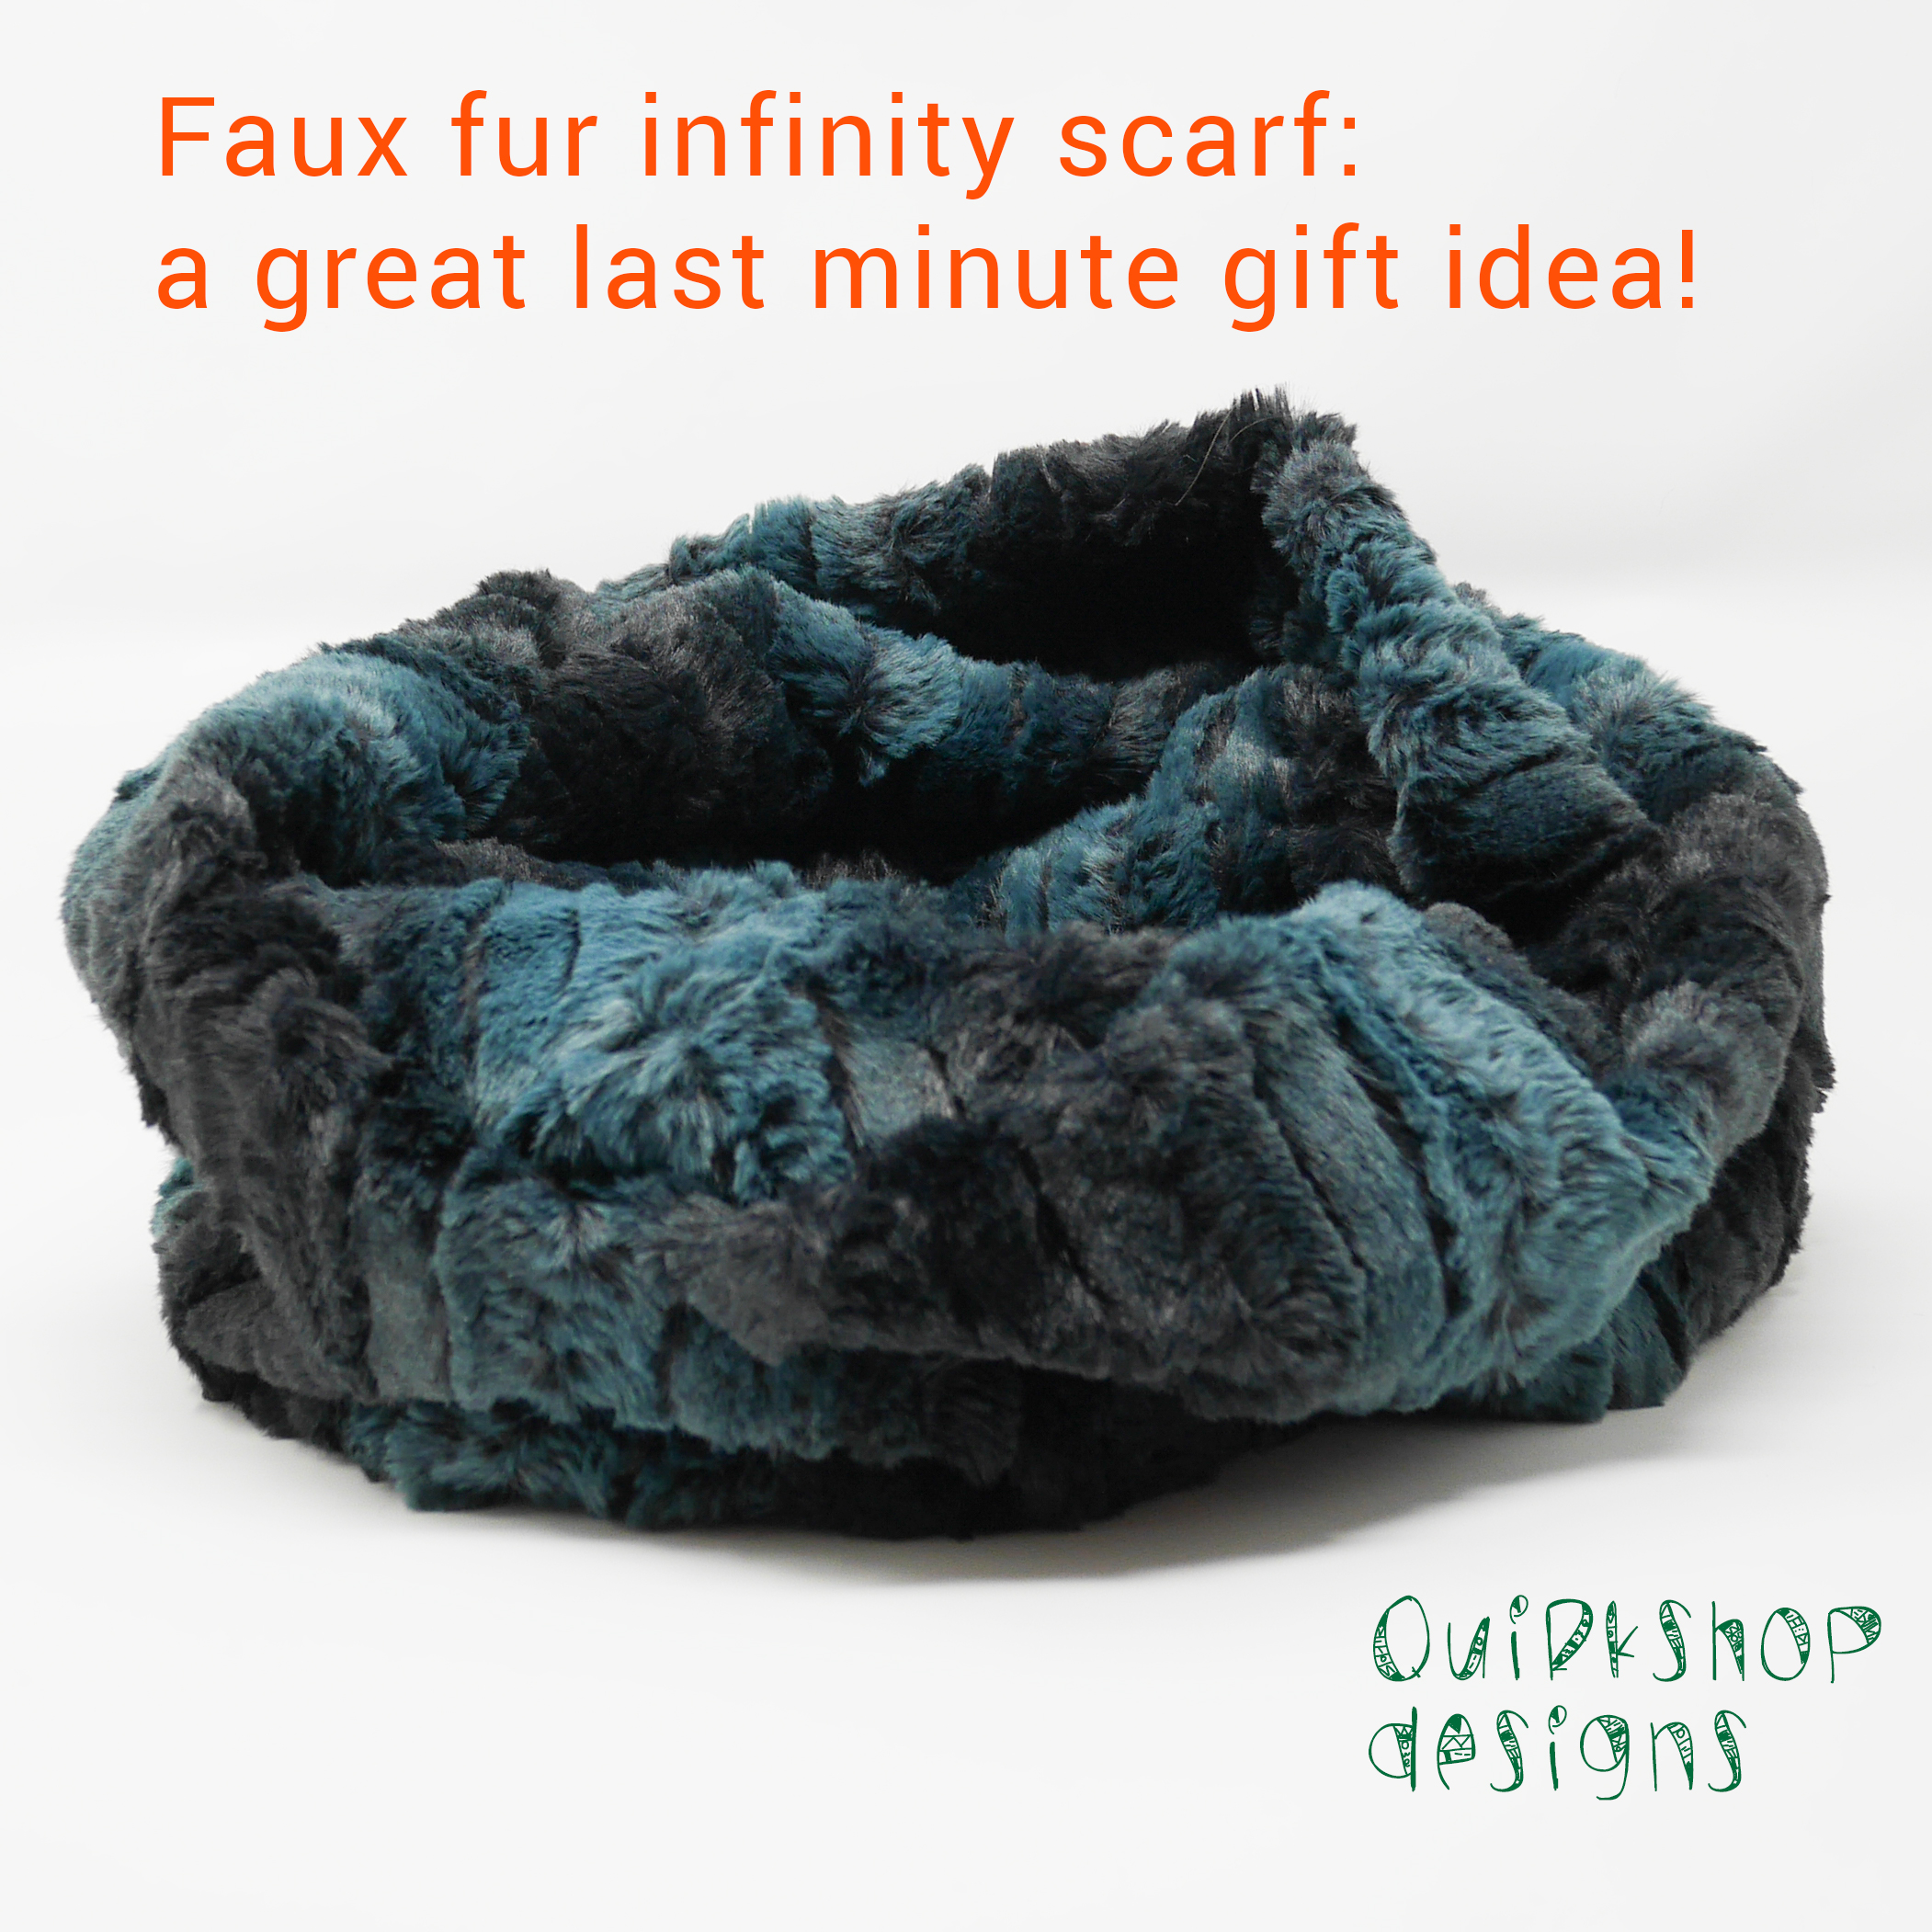 Faux fur scarf--a great last minute gift idea